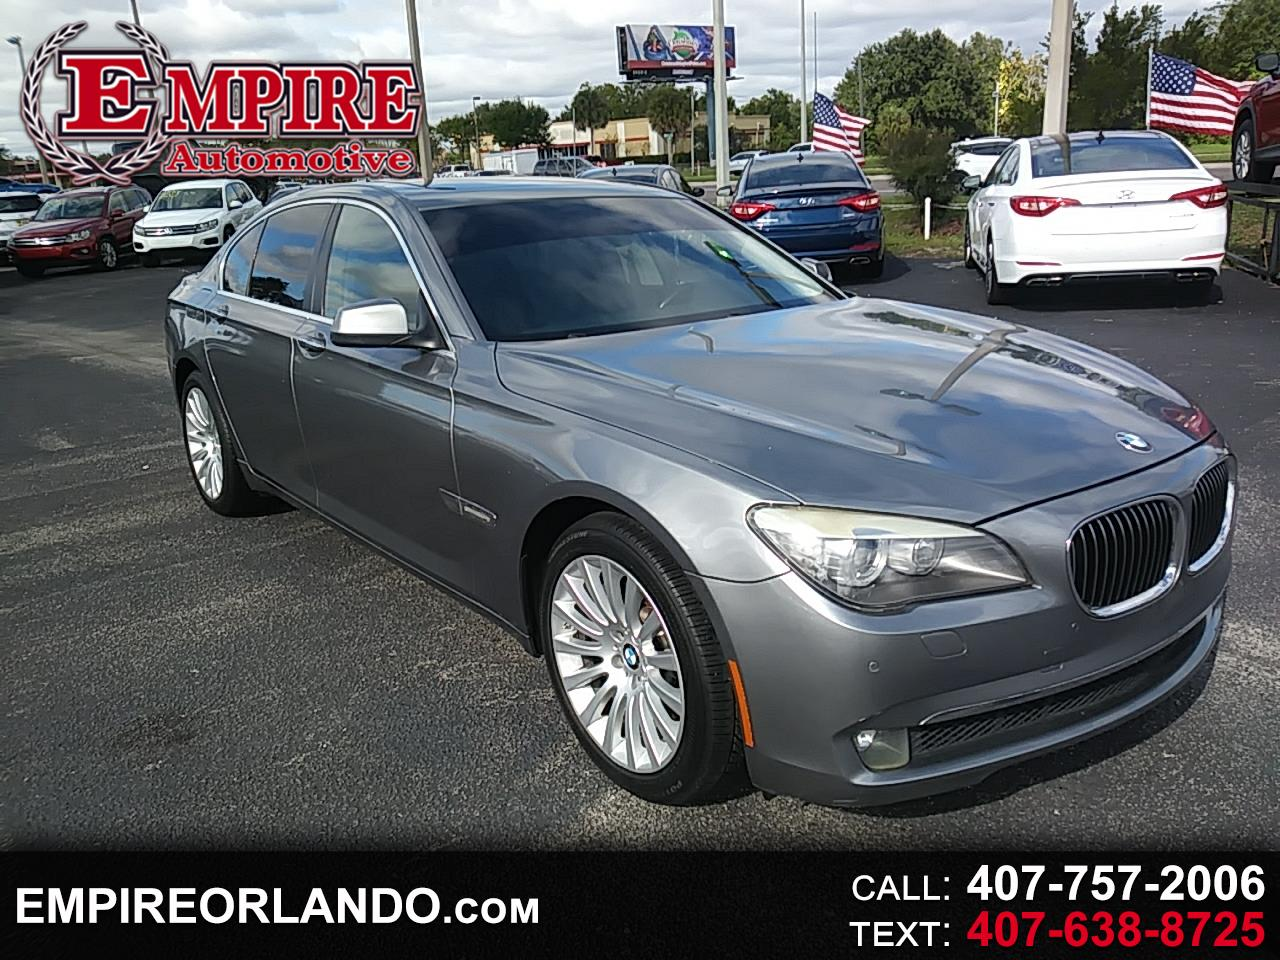 BMW 7 Series 4dr Sdn 750i 2011